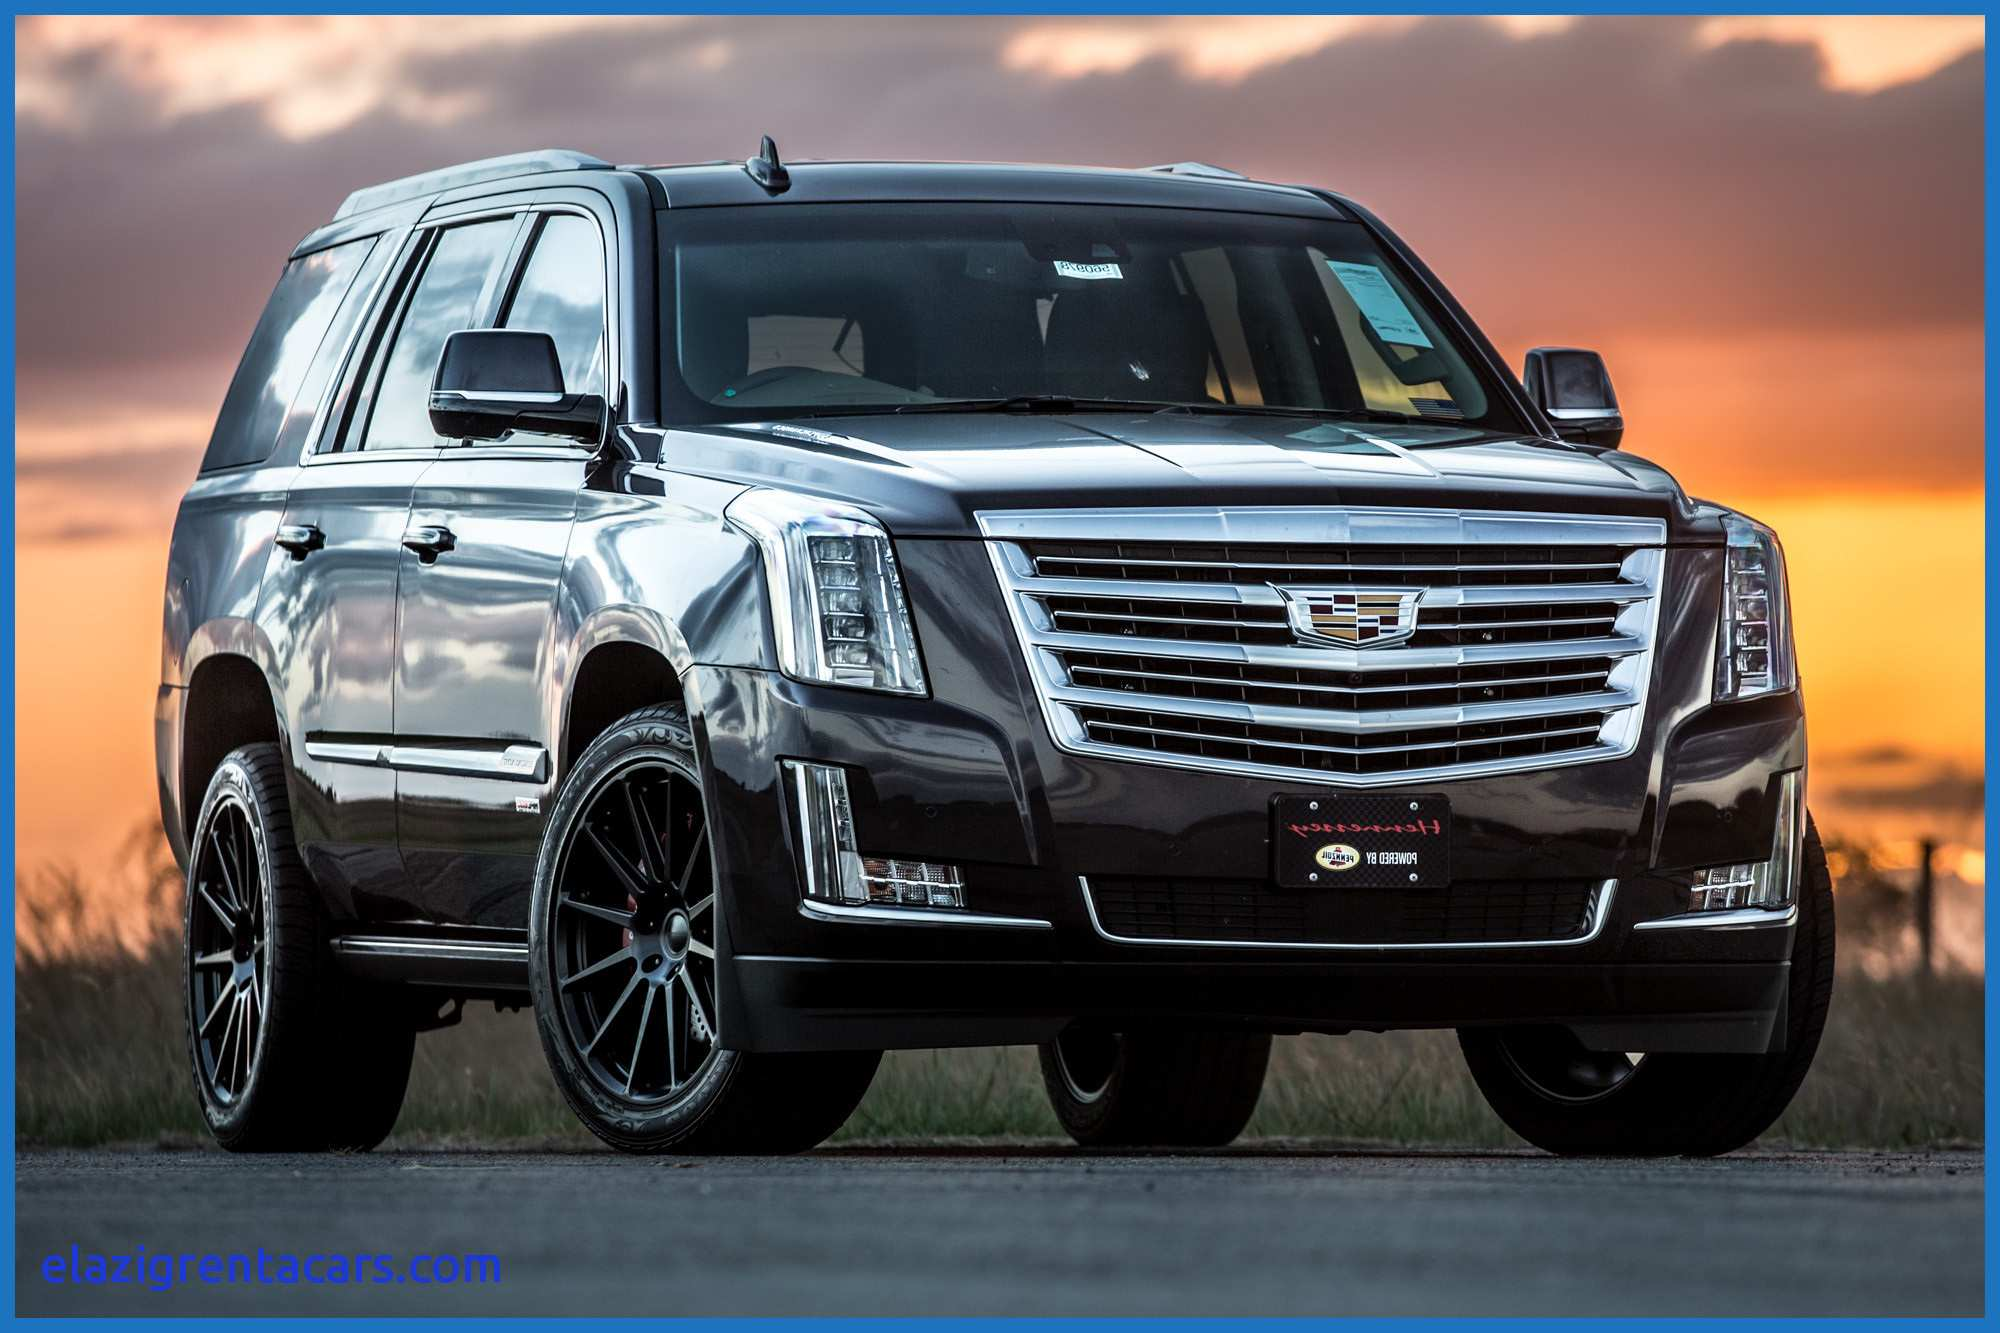 37 All New 2019 Cadillac Diesel Ratings for 2019 Cadillac Diesel